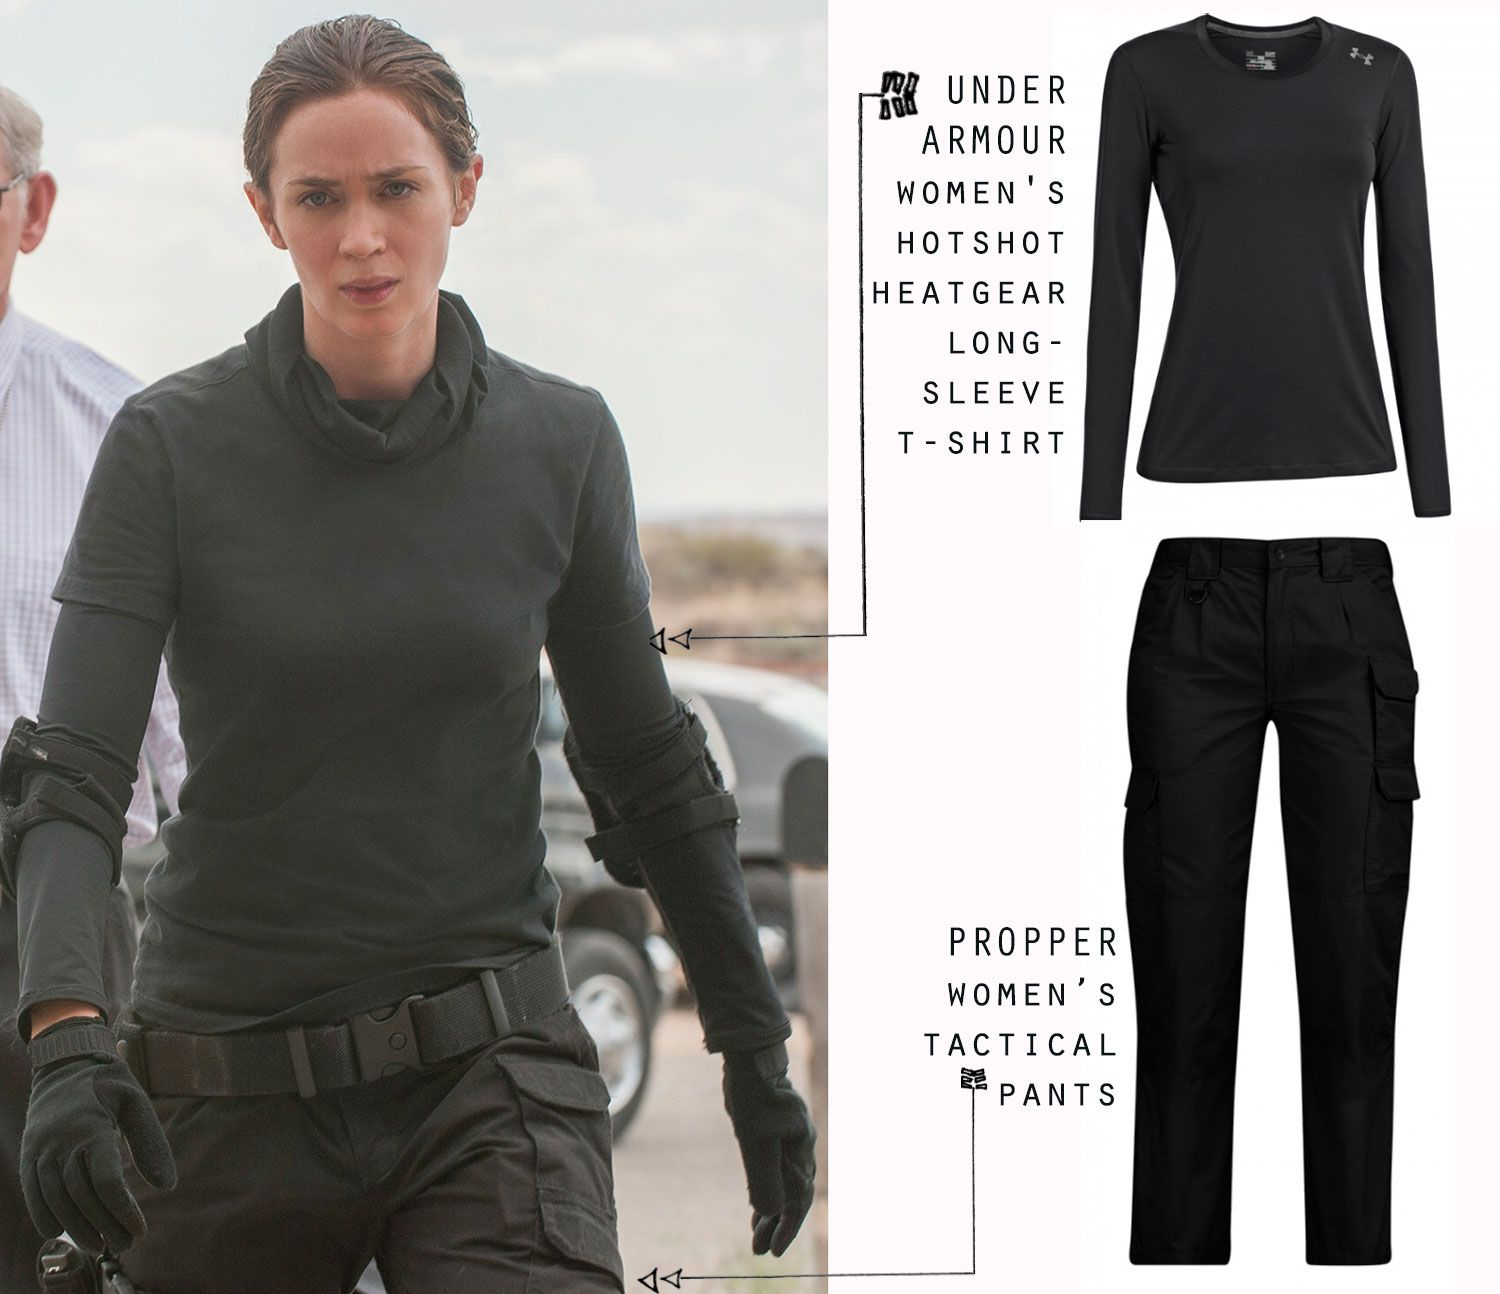 Emily Blunt Sicario Kate Macer Black Tactical Outfit Ua